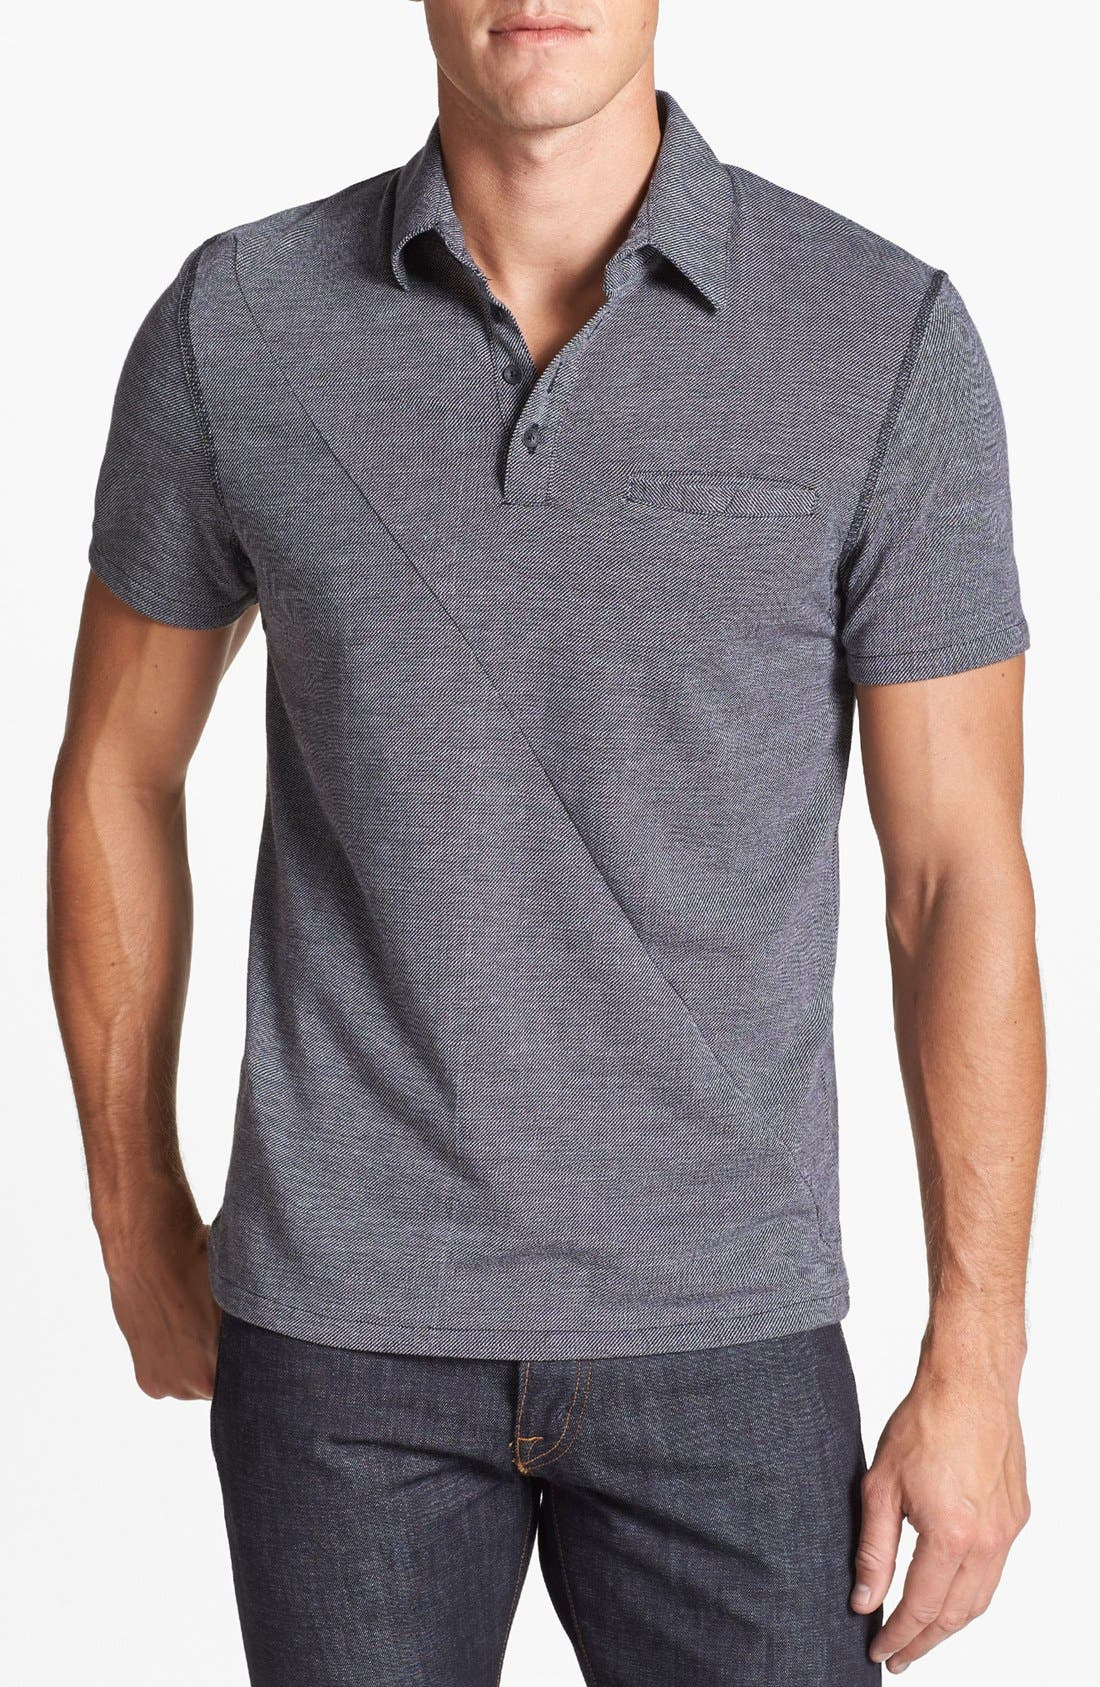 Alternate Image 1 Selected - Vince Camuto Slim Fit Knit Polo